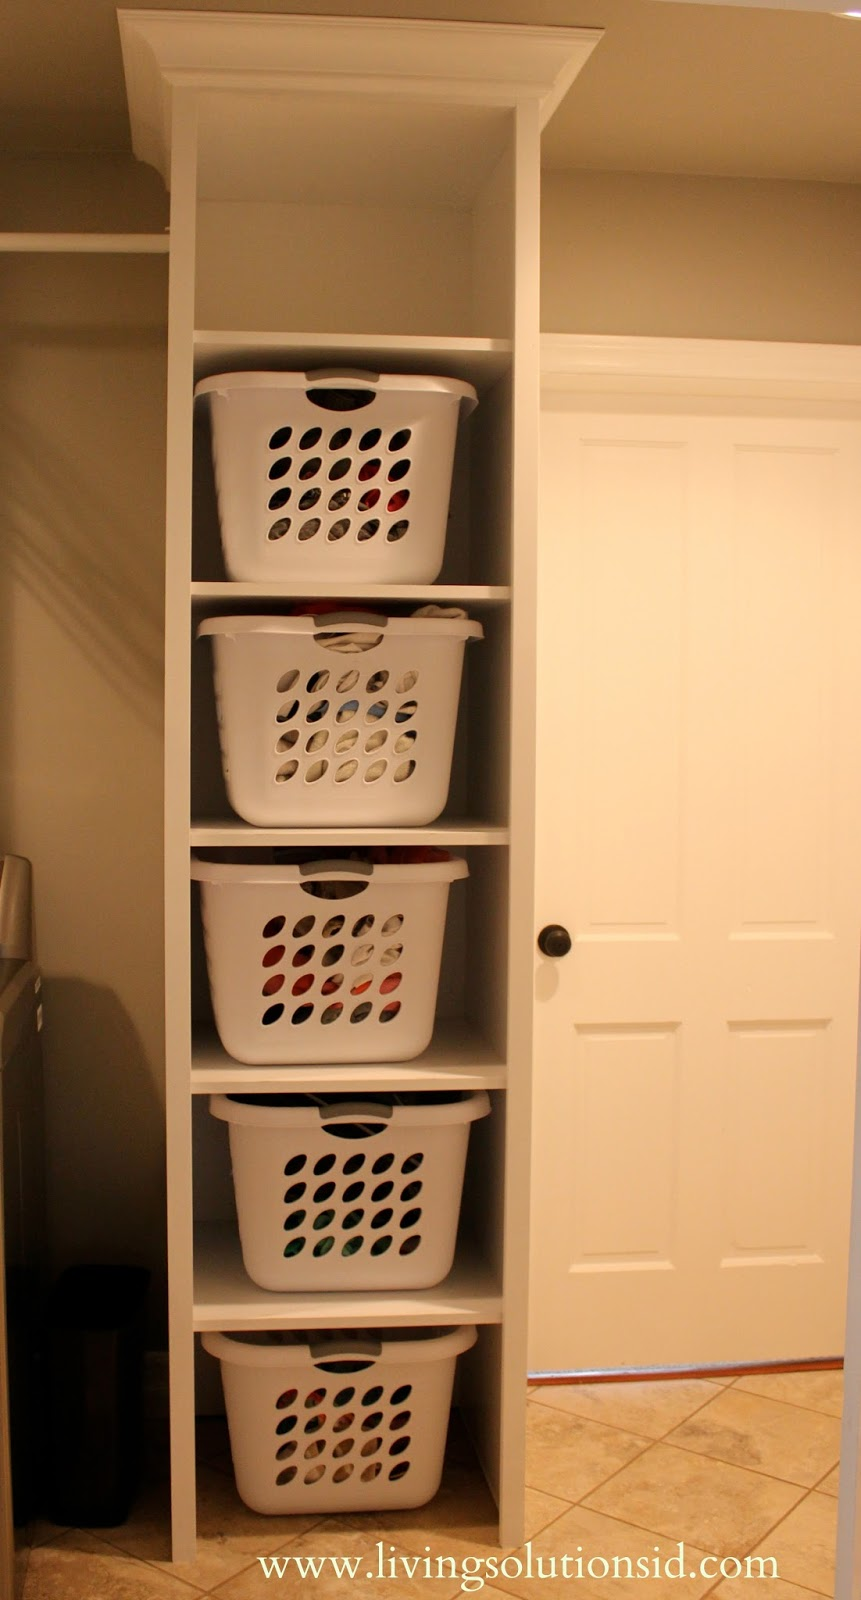 also wanted a place to hang dry clothes as we do a lot of that we